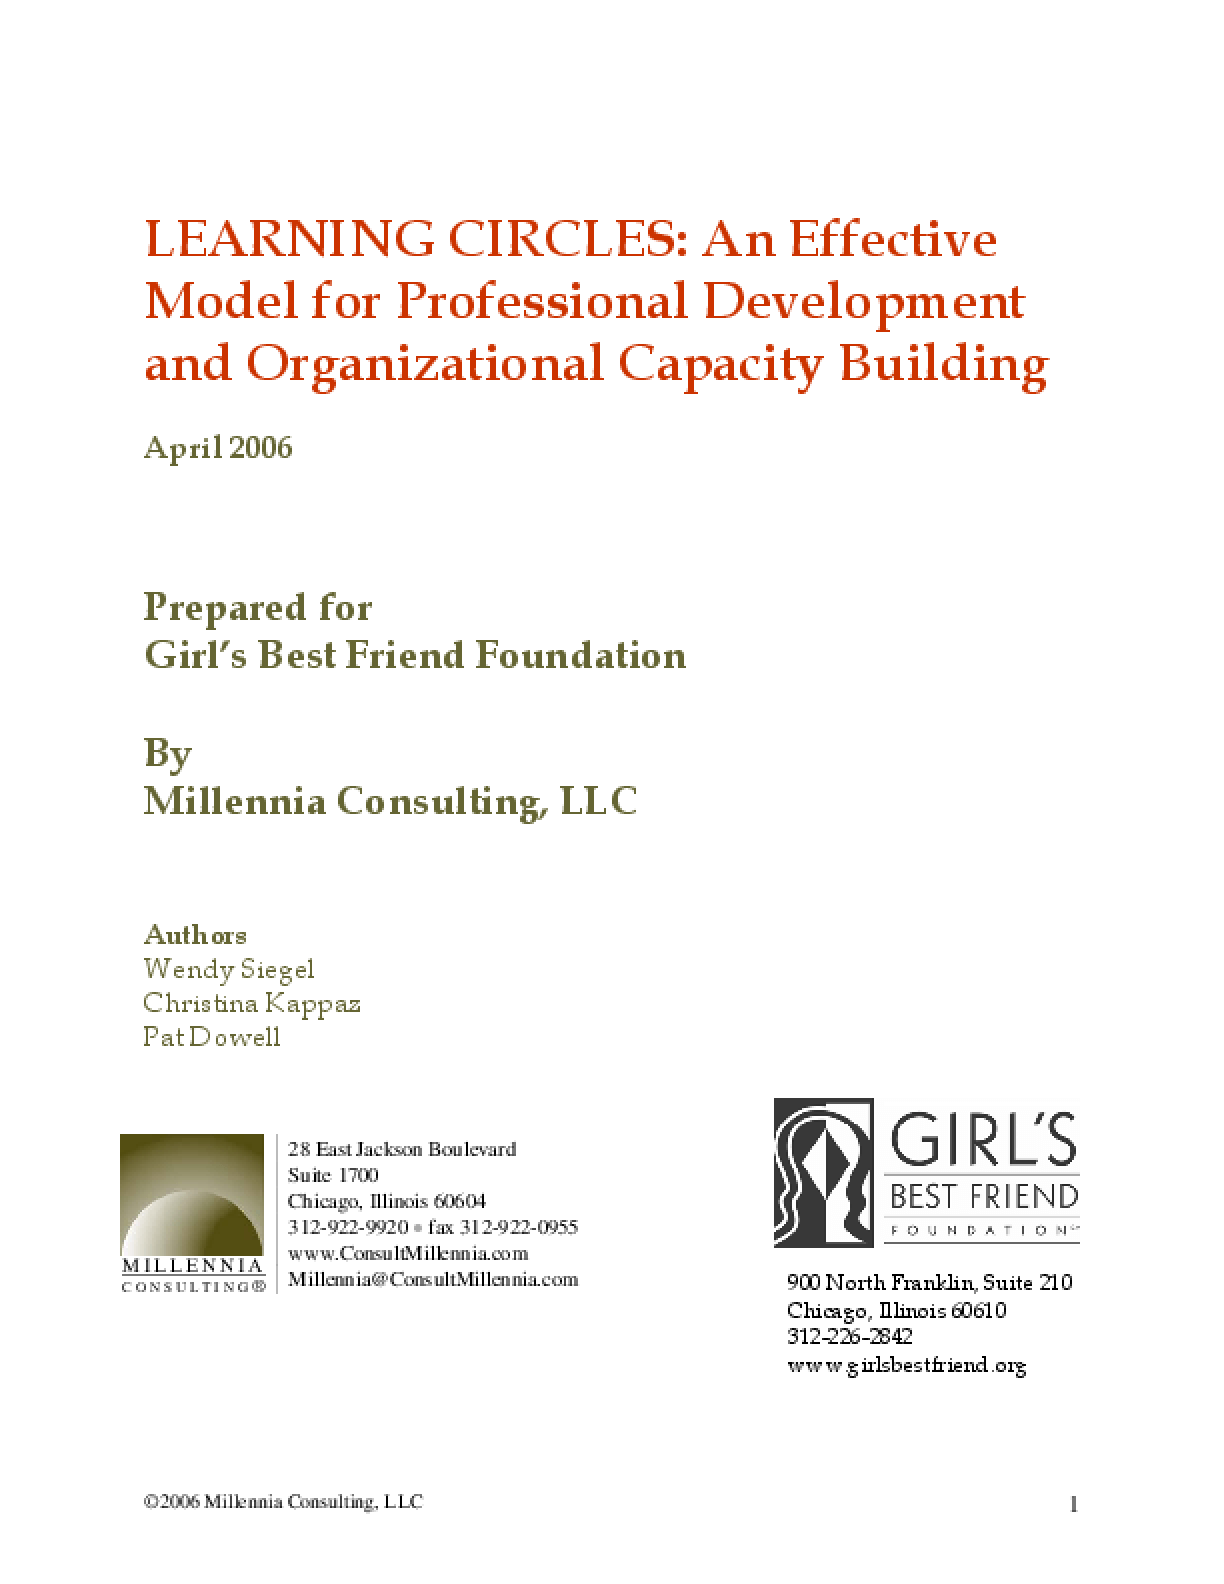 Learning Circles: An Effective Model for Professional Development and Organizational Capacity Building